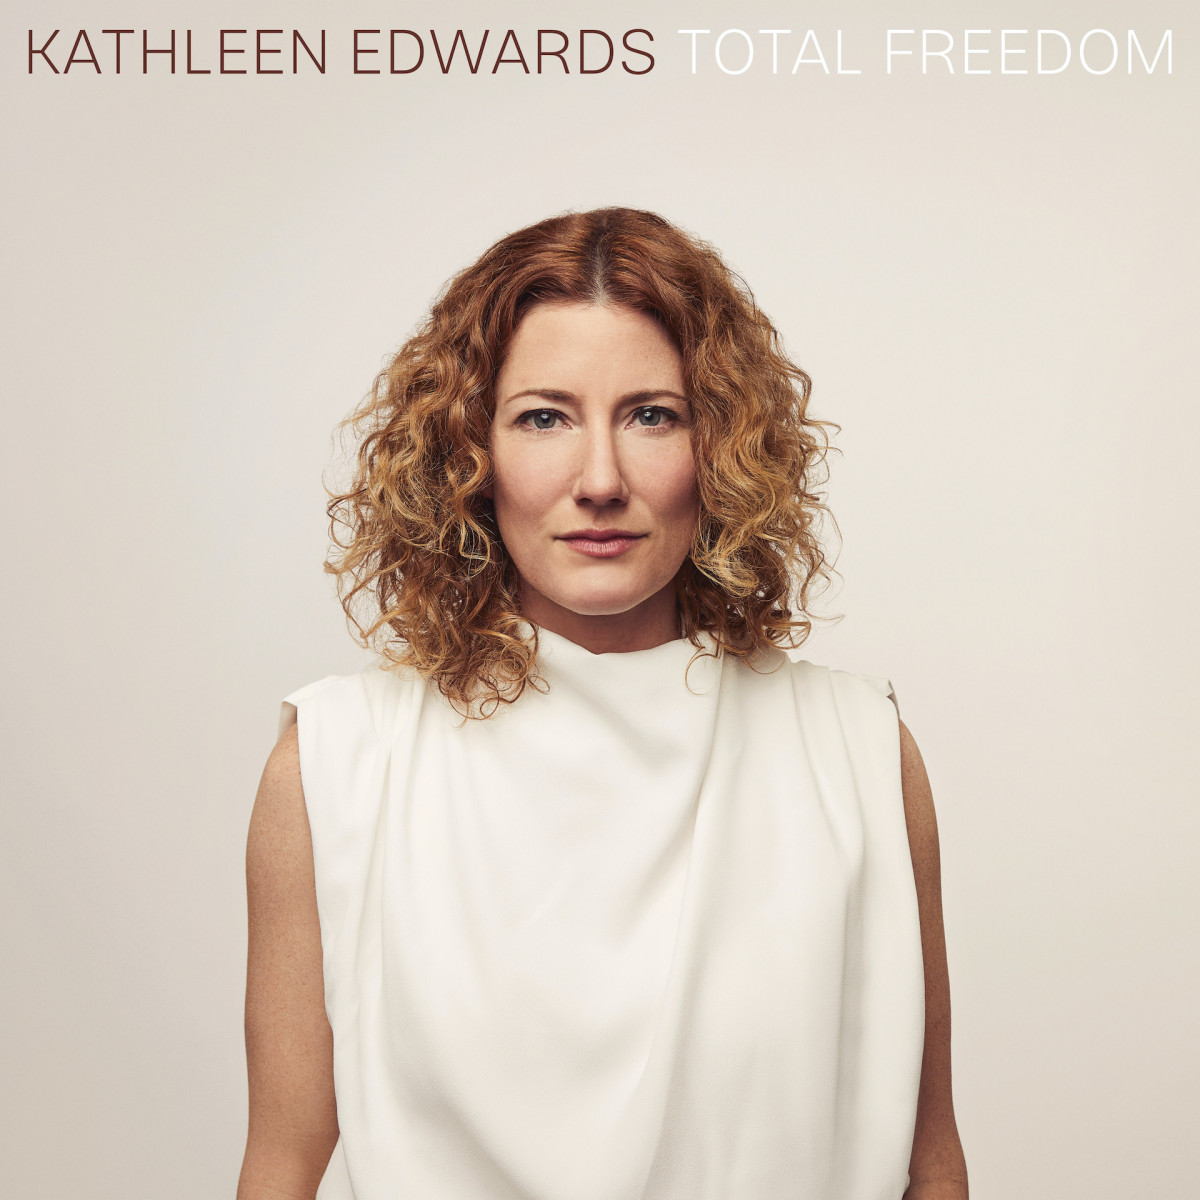 Total Freedom by Kathleen Edwards